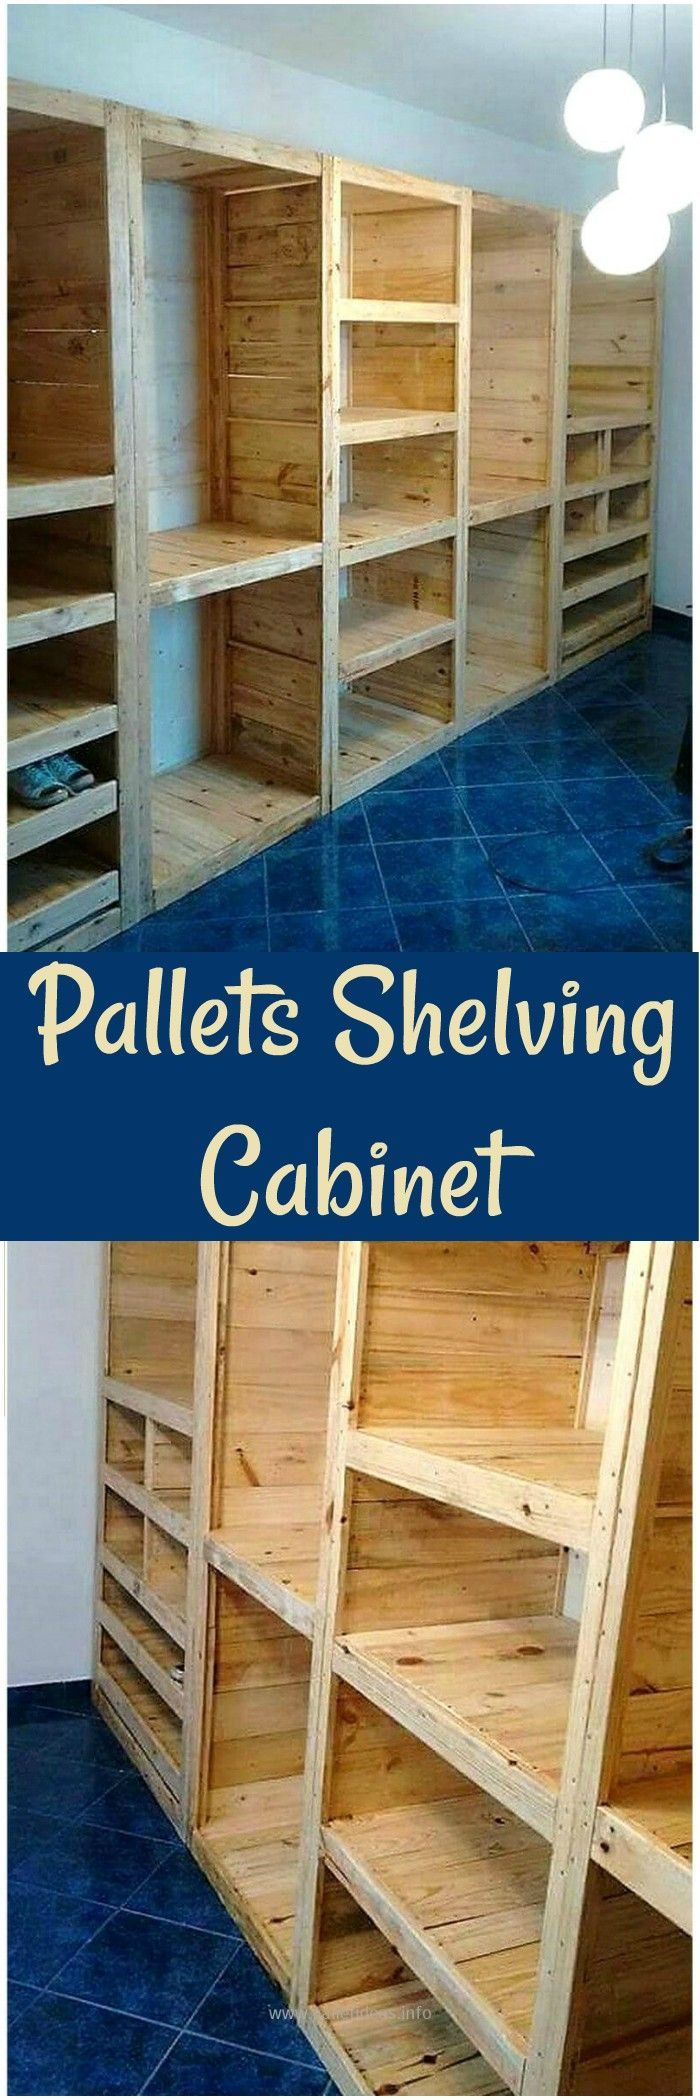 Pallets Shelving Cabinet - wooden pallet #woodenpalletfurniture